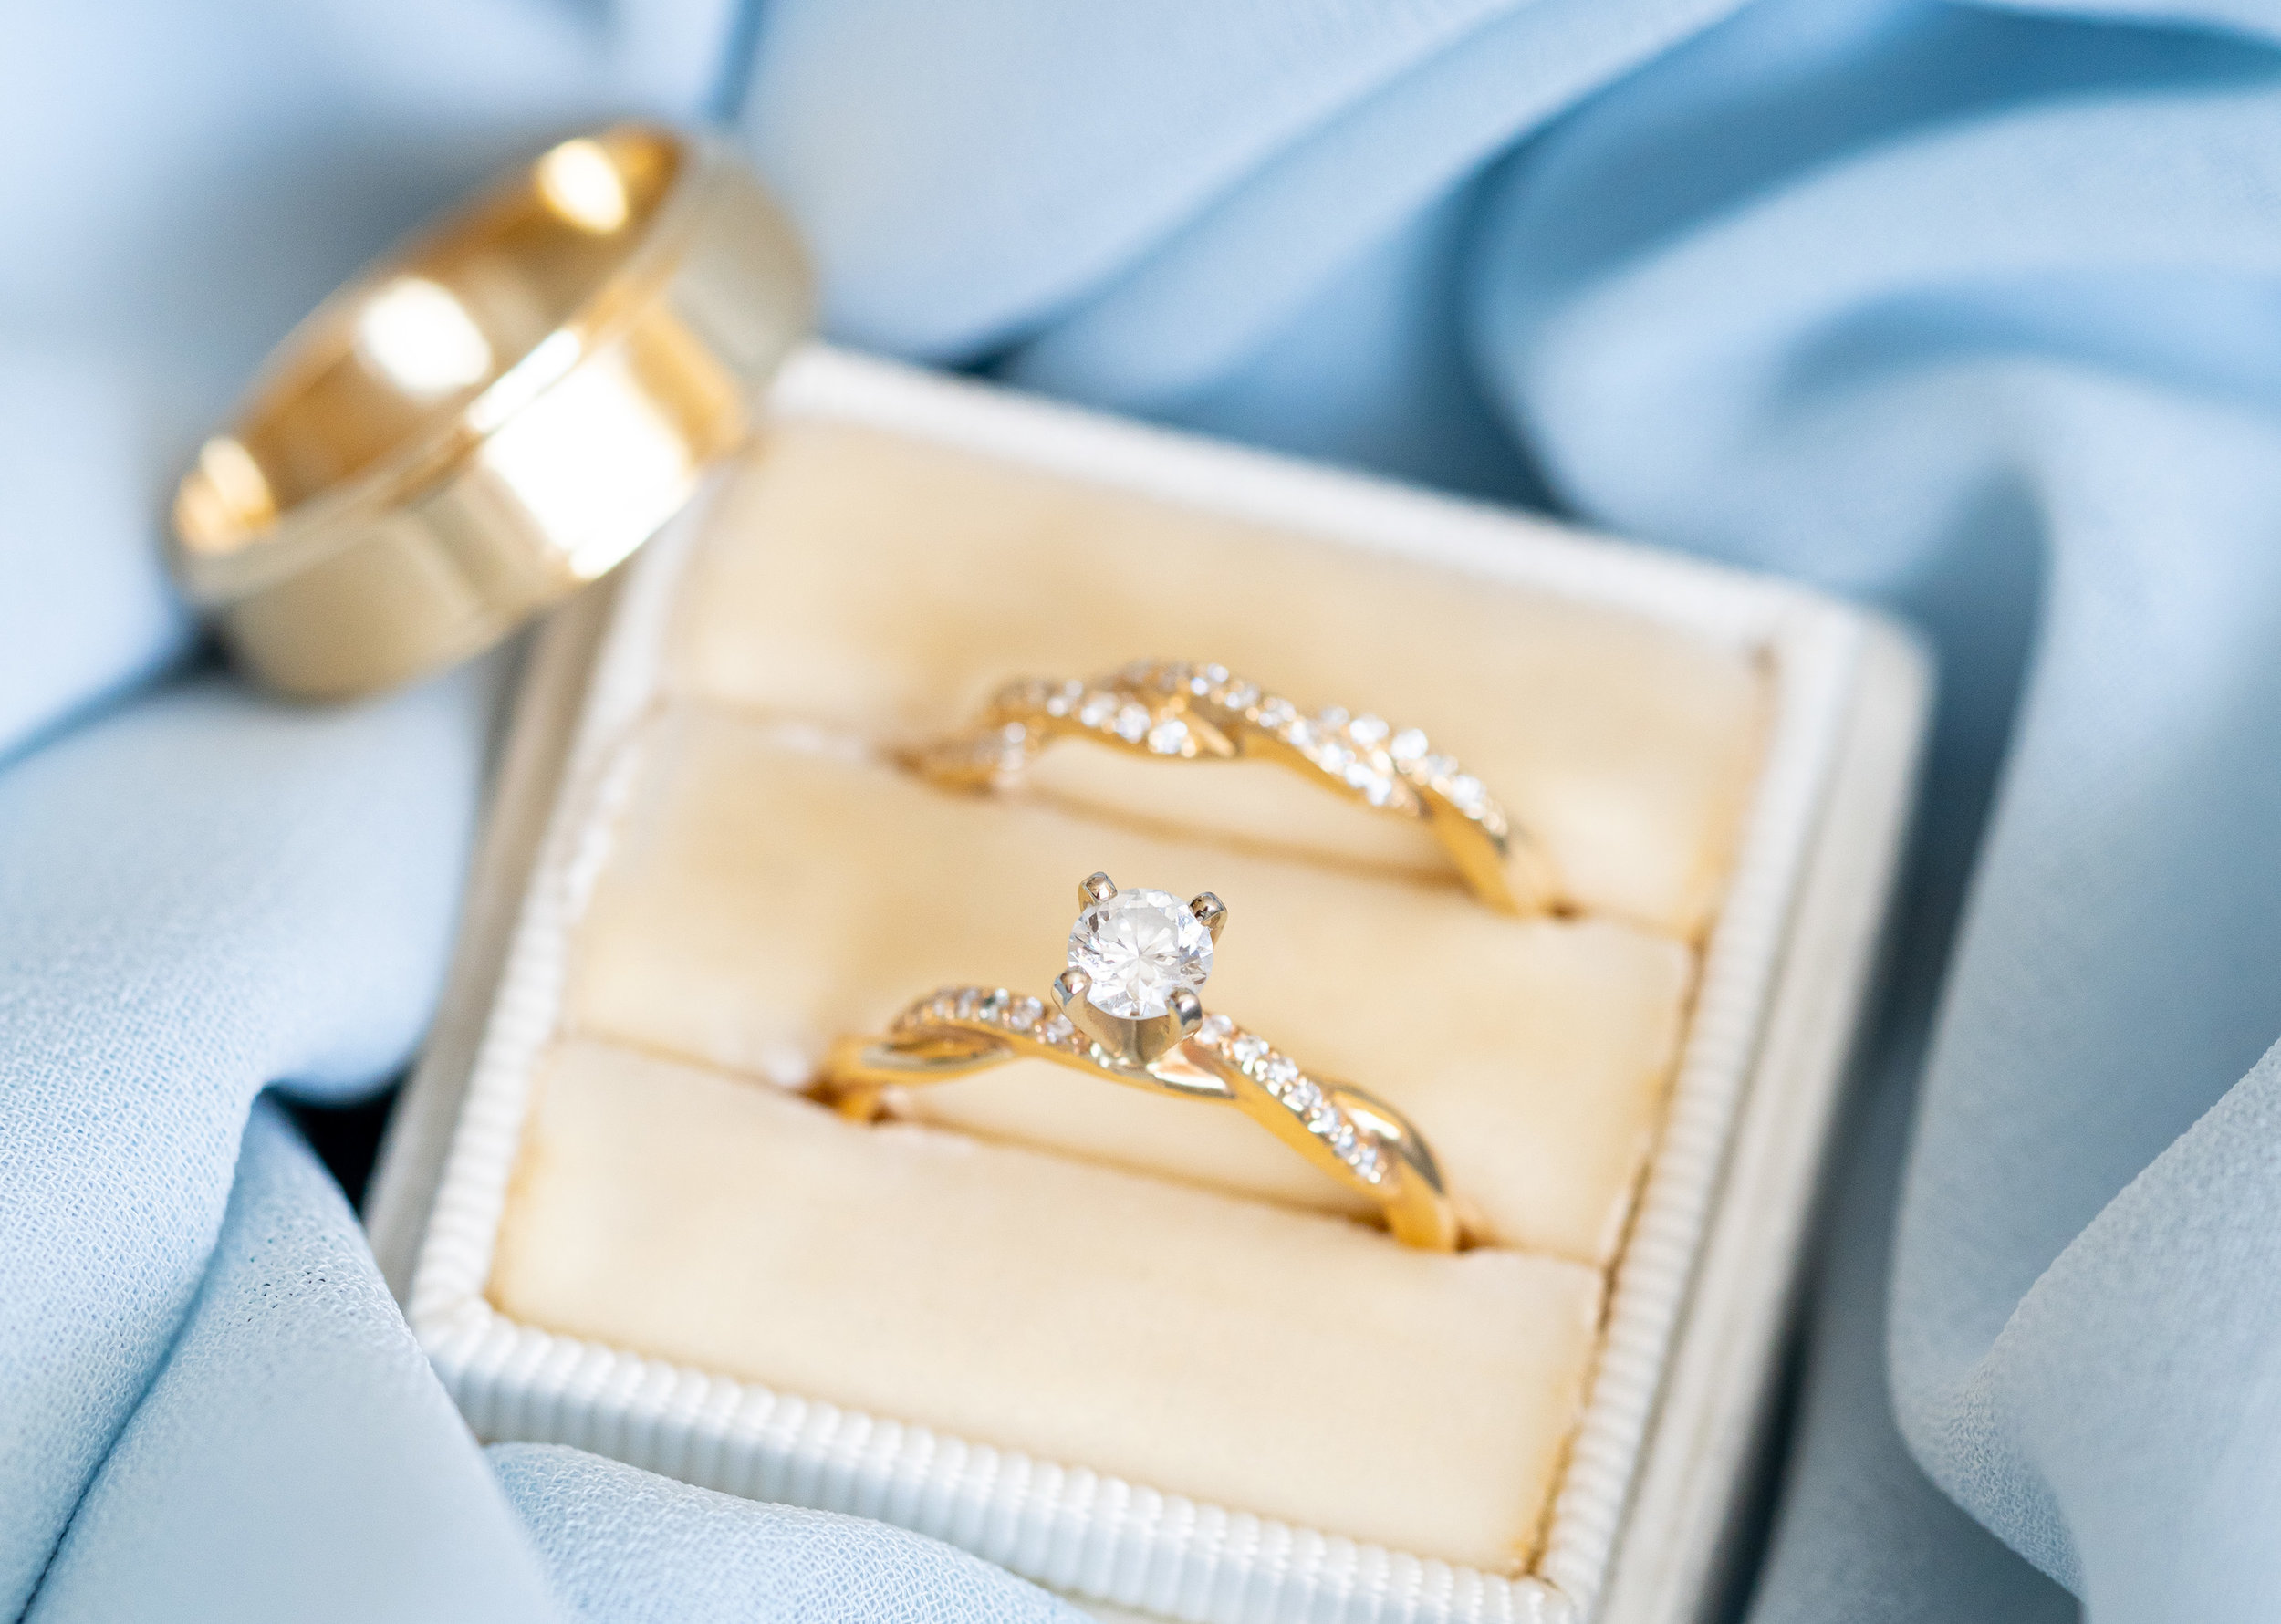 Everett jewelers wedding rings and ivory Margaery Mrs box